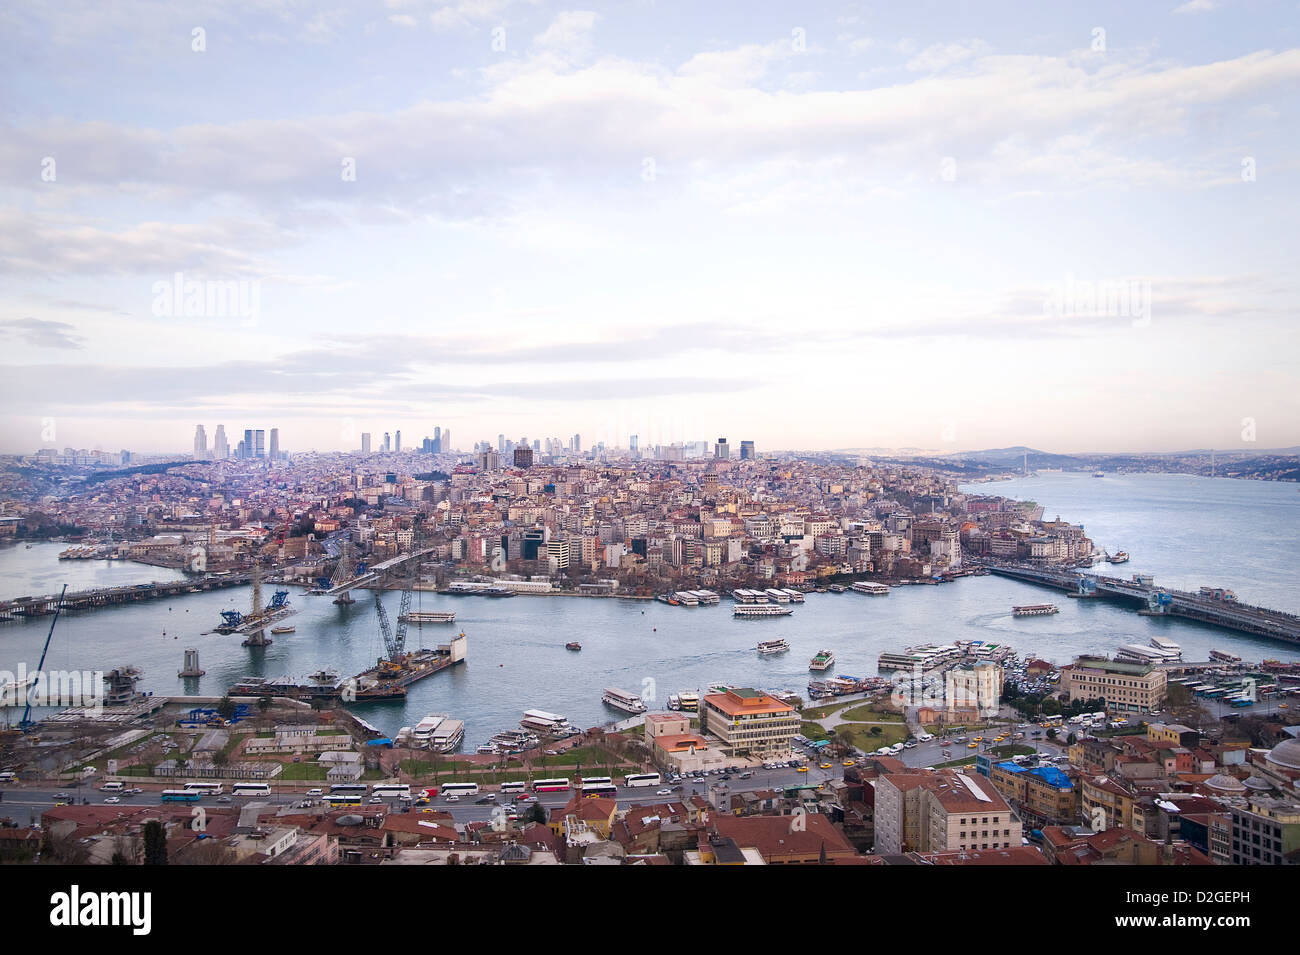 The Golden Horn and Bosporus from above is a stunning bird perspective. You can see also the famous Galata bridge. - Stock Image